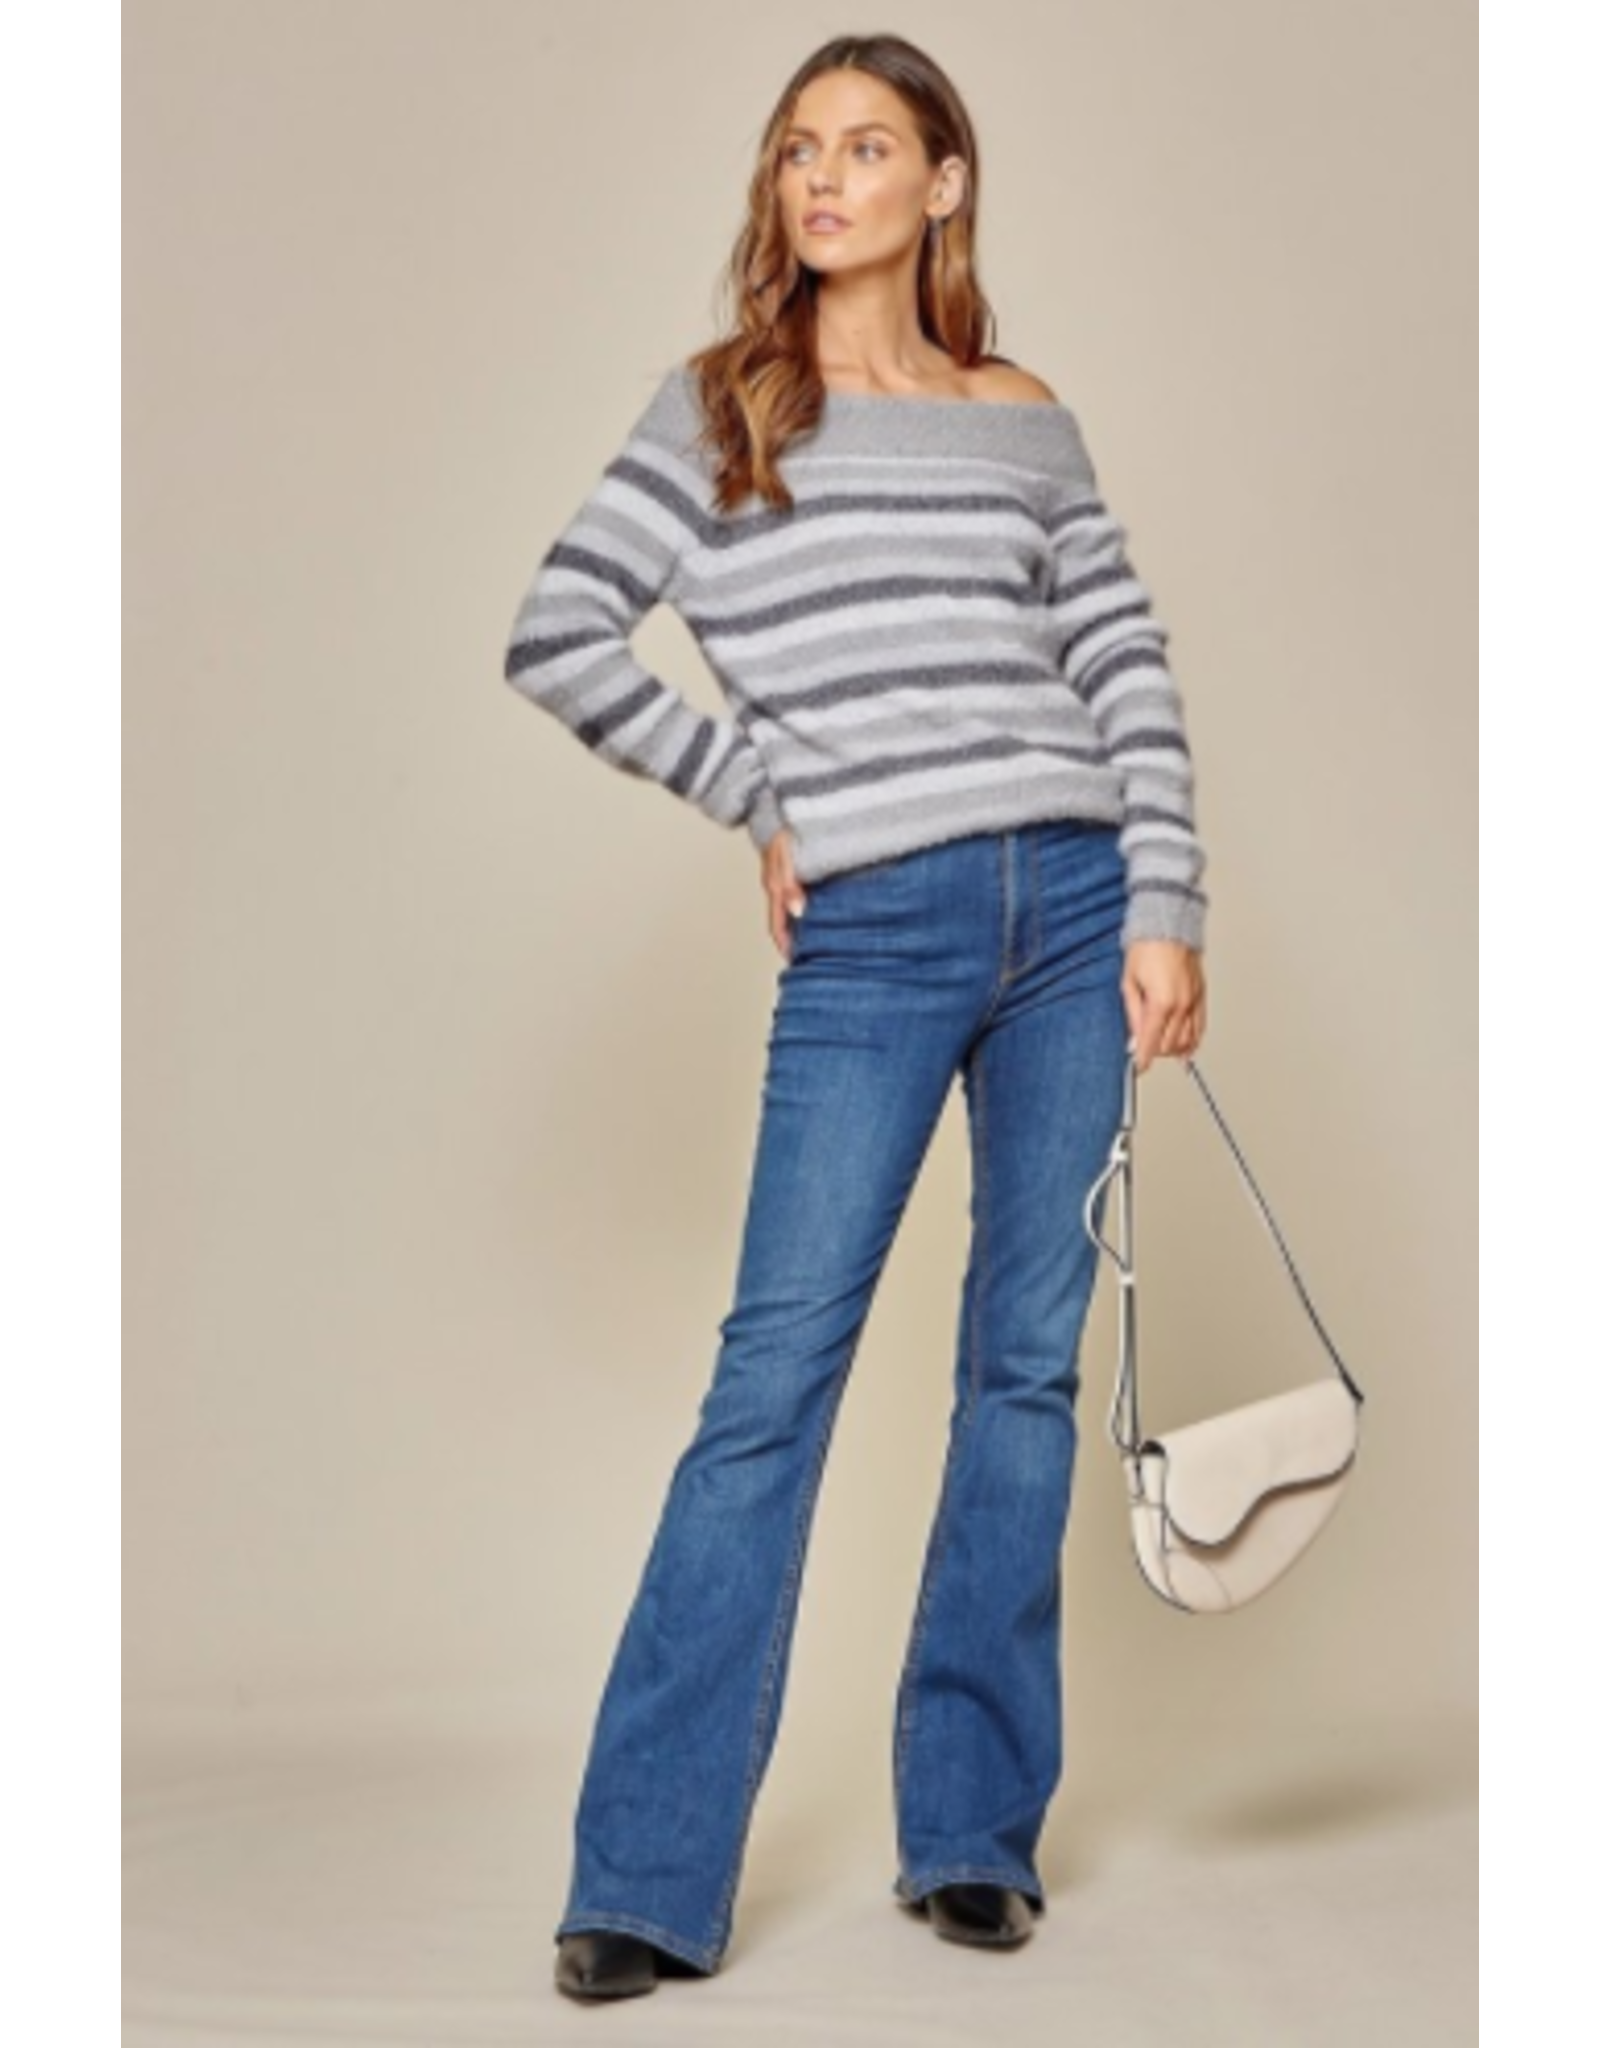 Monroe - Striped off the shoulder sweater